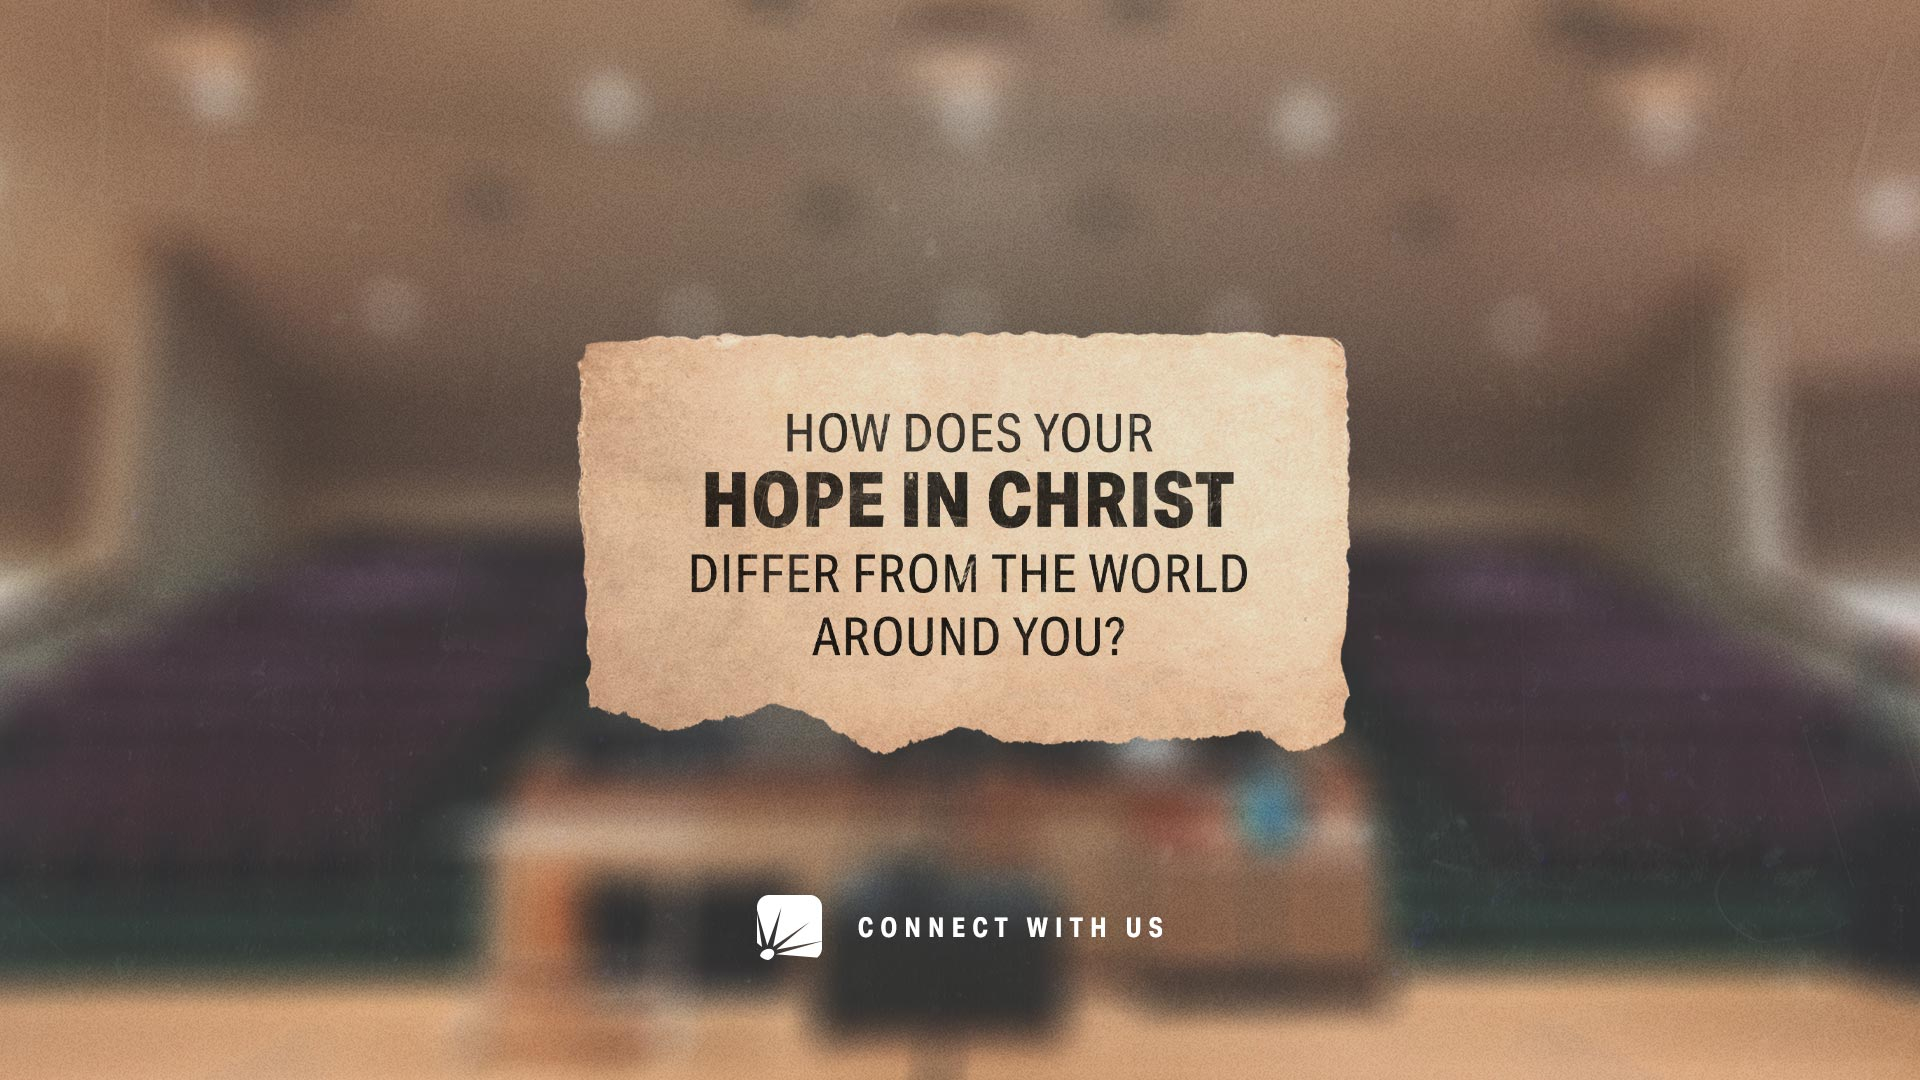 How does your hope in Christ differ from the world around you?